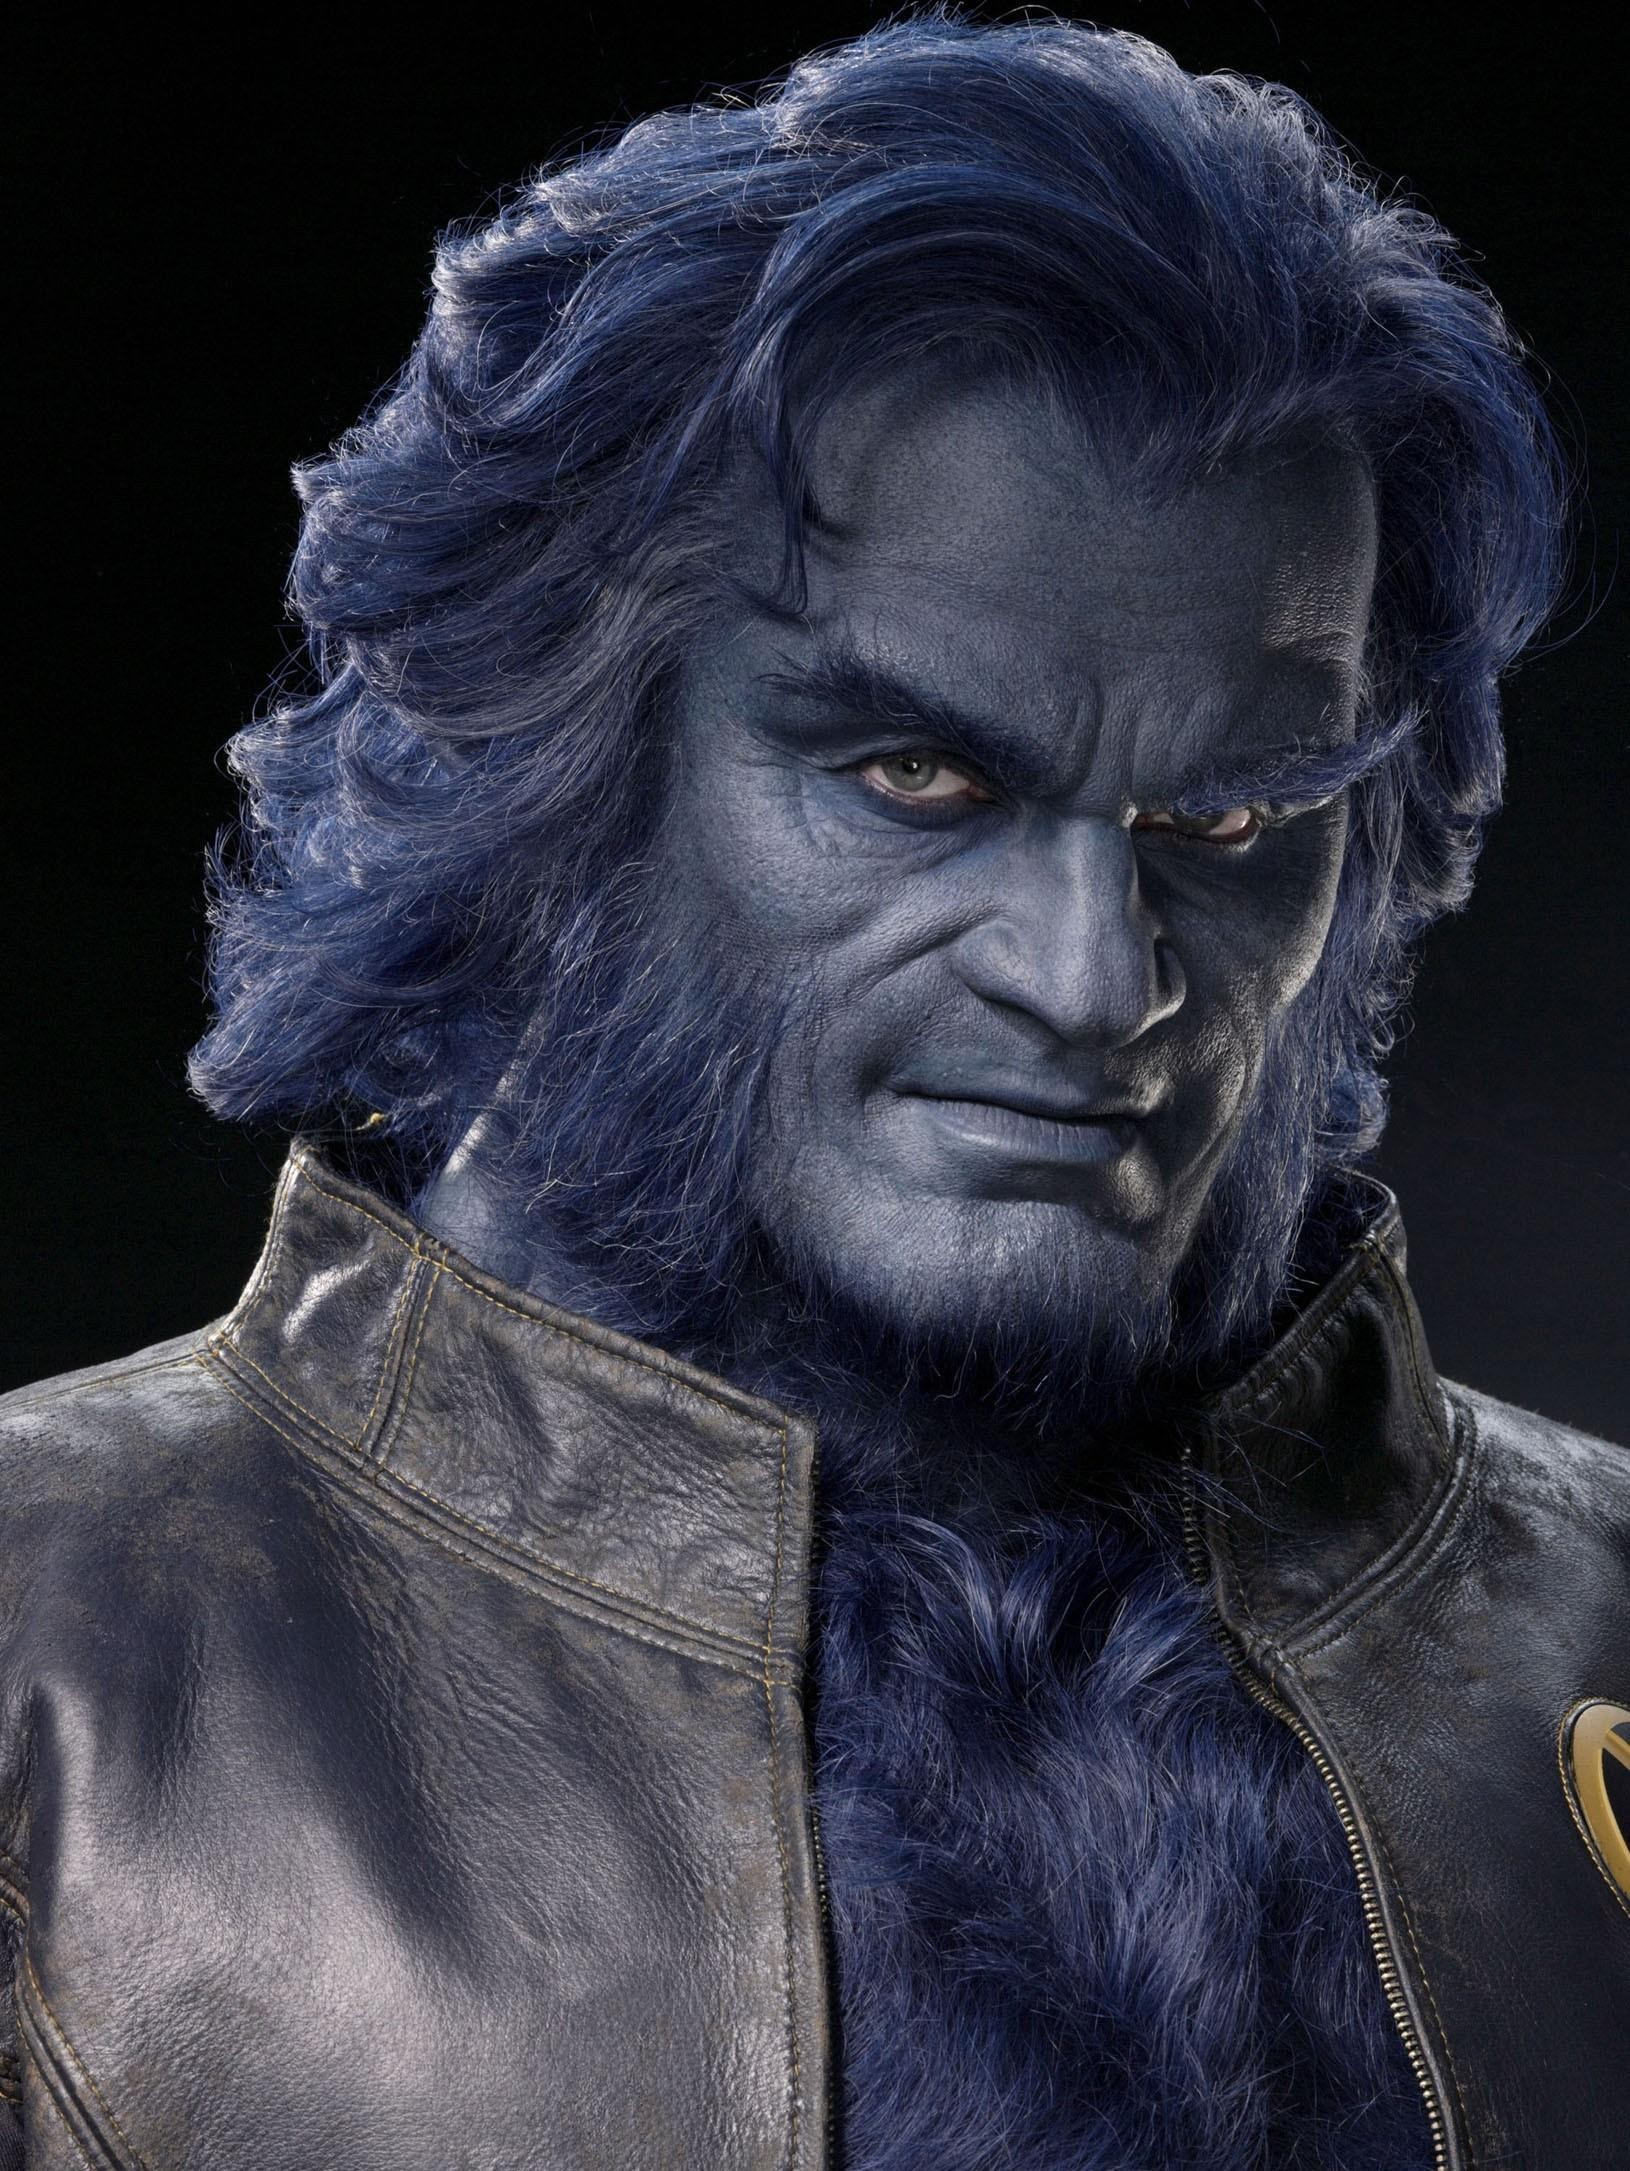 X Men Days Of Future Past Kelsey Grammer Kelsey Grammer Wants t...